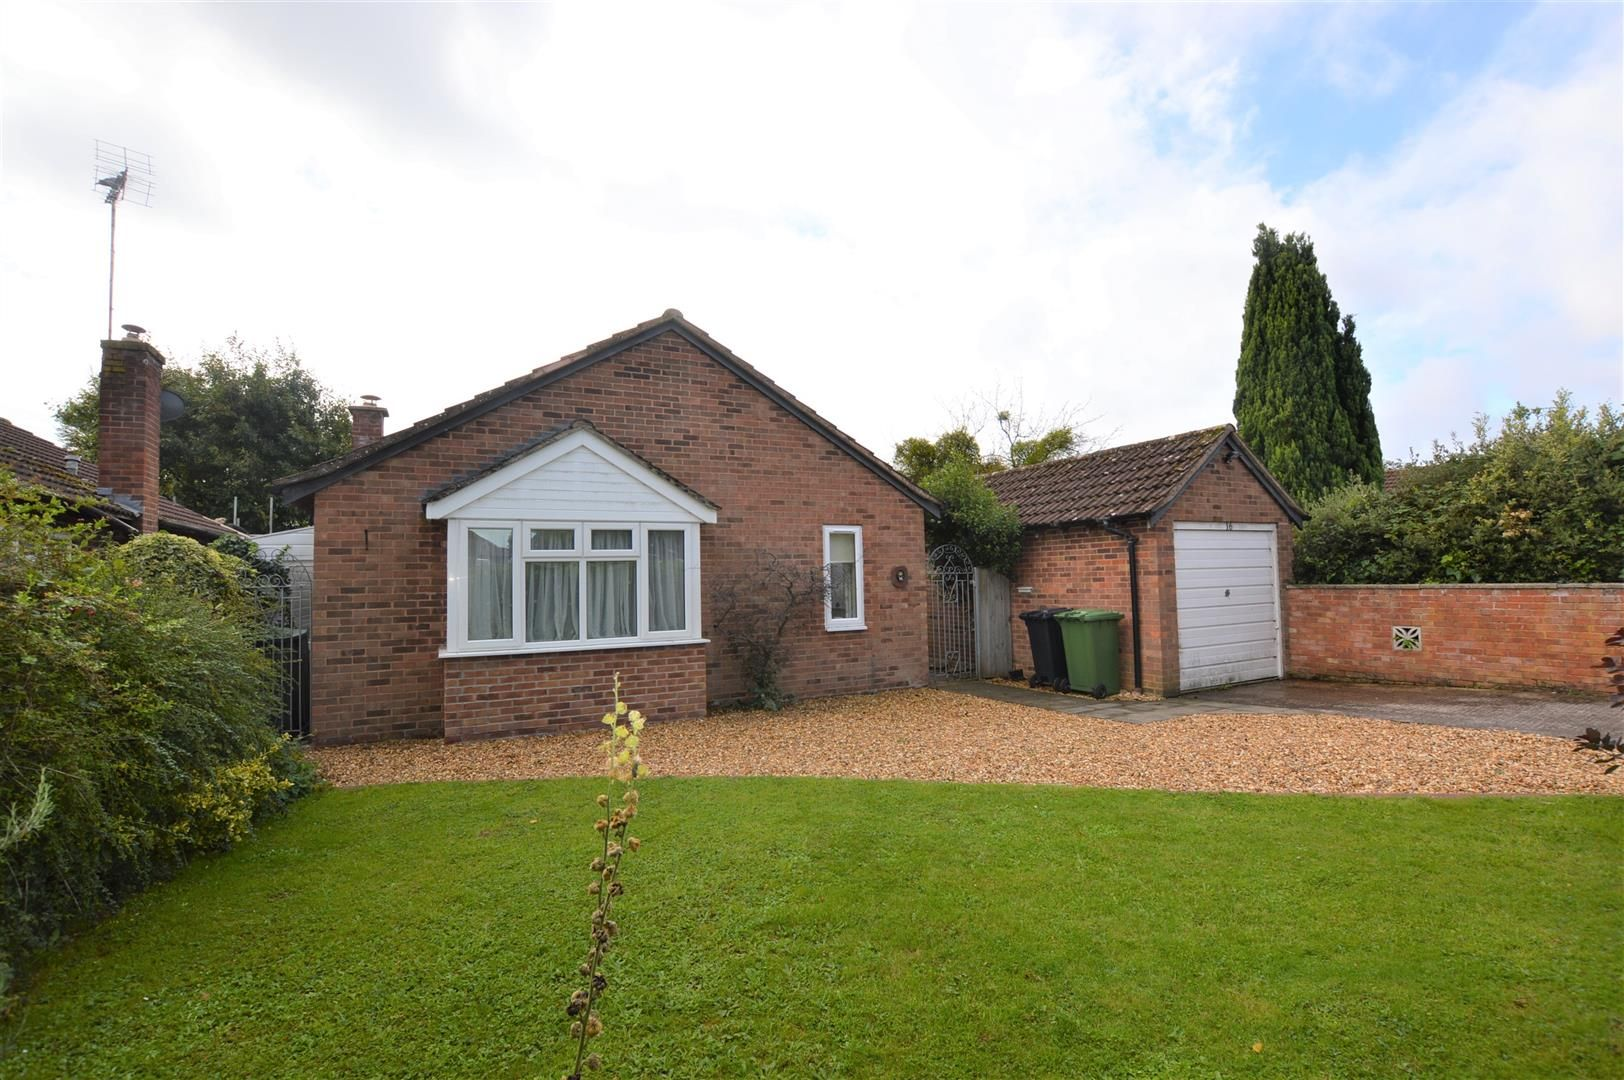 2 bed detached-bungalow for sale in Weobley, HR4